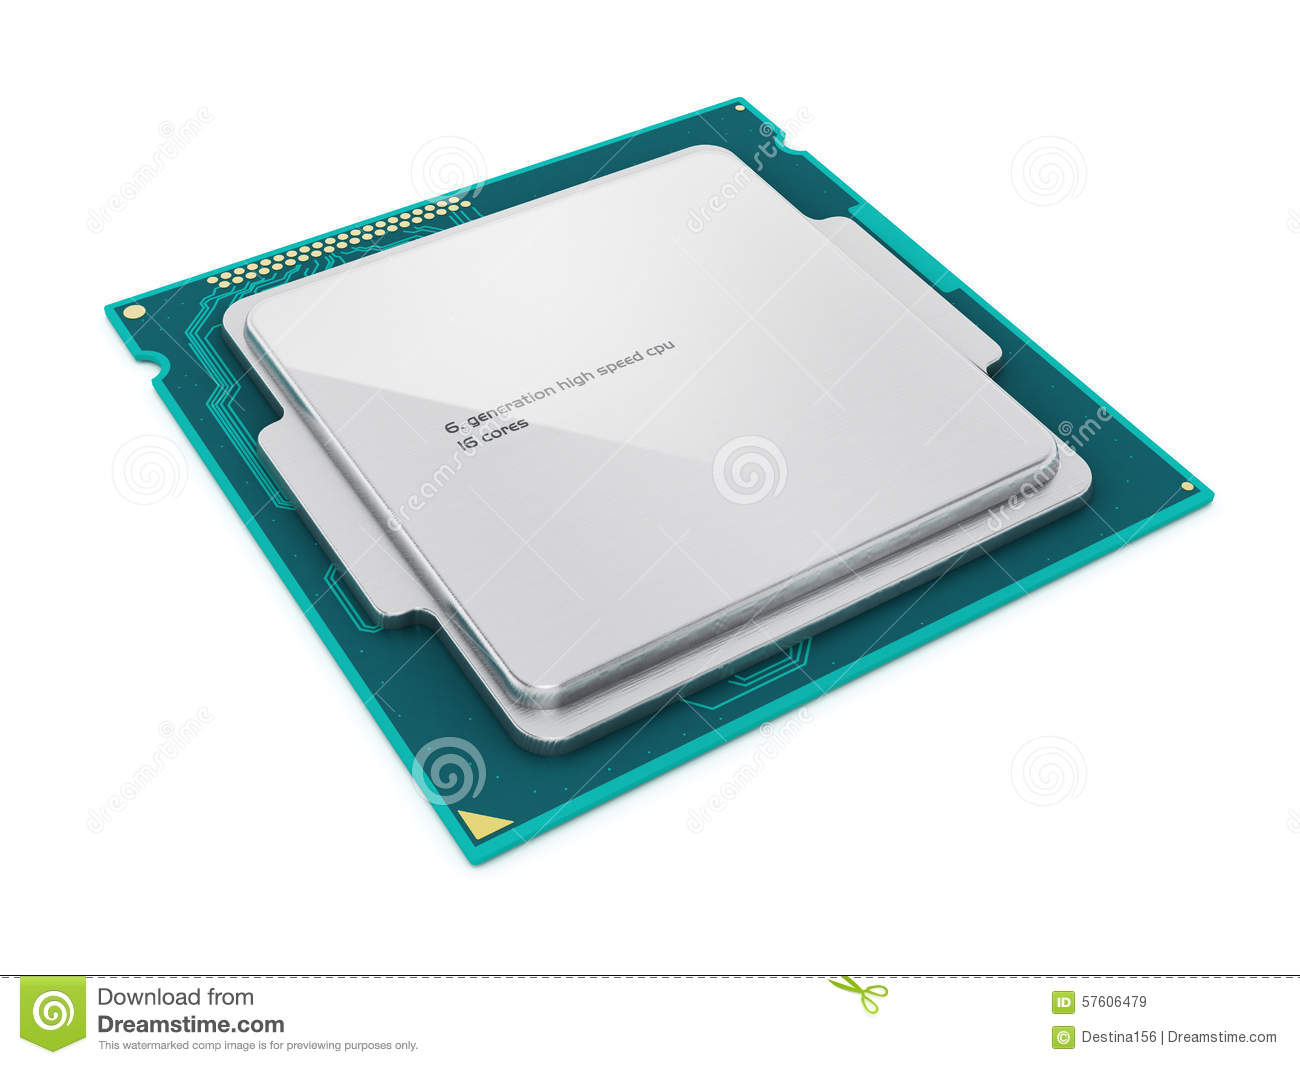 the central processing unit The central processing unit(cpu) also know as the processor the cpu is the most important component of the computer system.